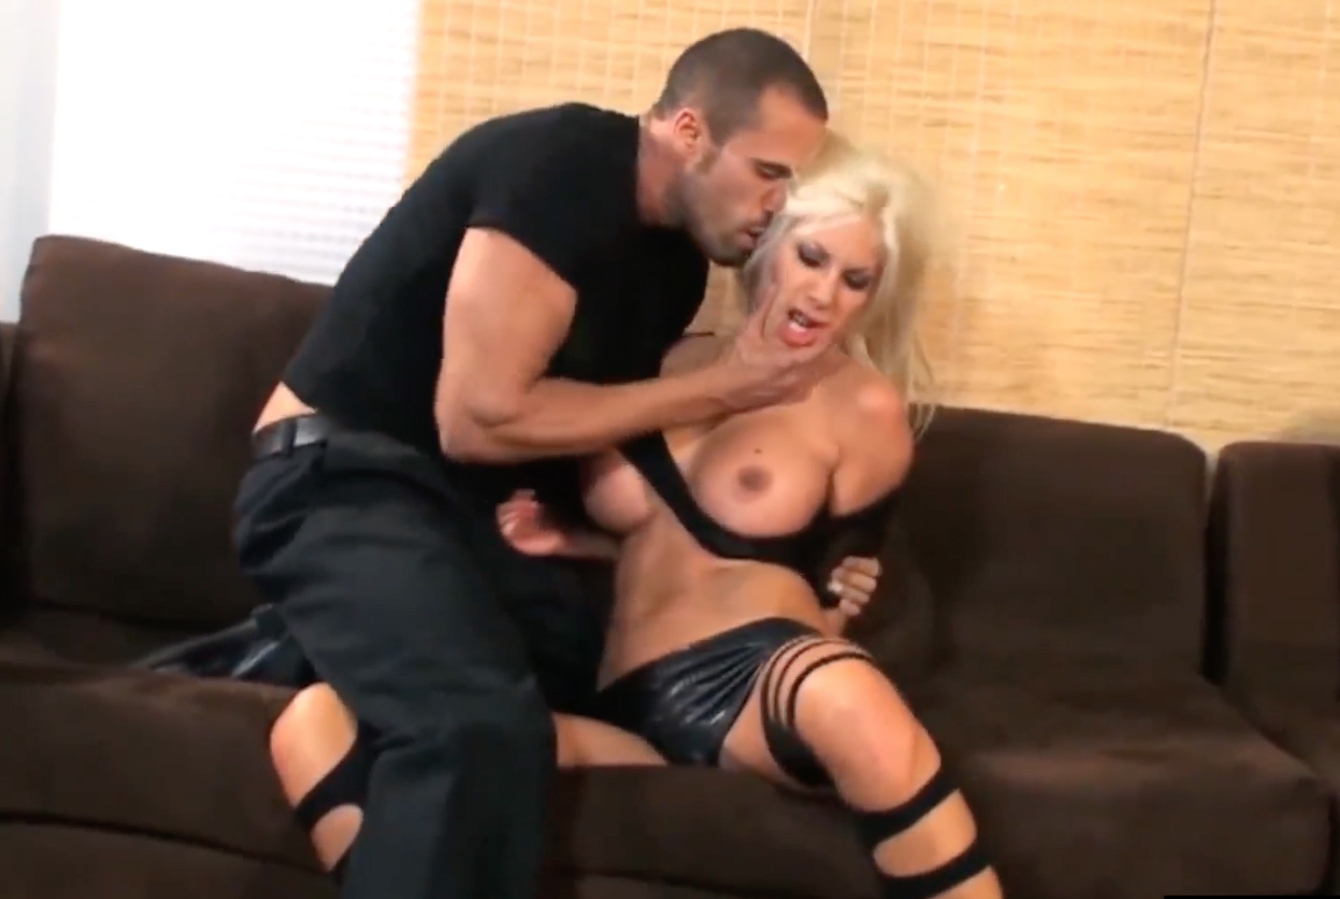 Blowjob,Cumshot,Hardcore,Tits,Big Boobs,Puma Swede,HD Videos,Rough,Having